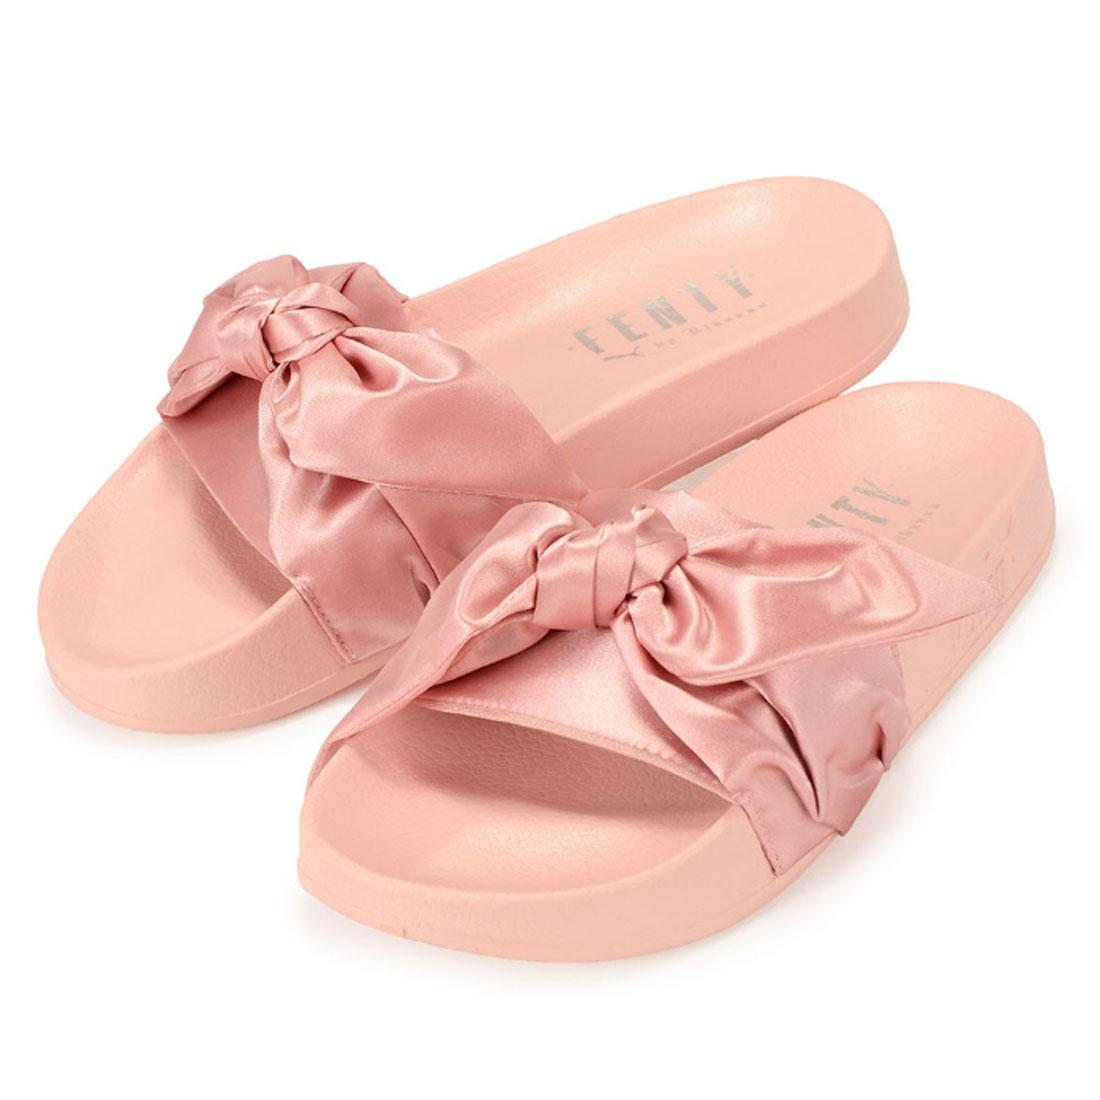 Details about PUMA Fenty X By Rihanna Womens Bow Slides Ladies Pink Silver  365774 03 Size UK 8 0f71d3409